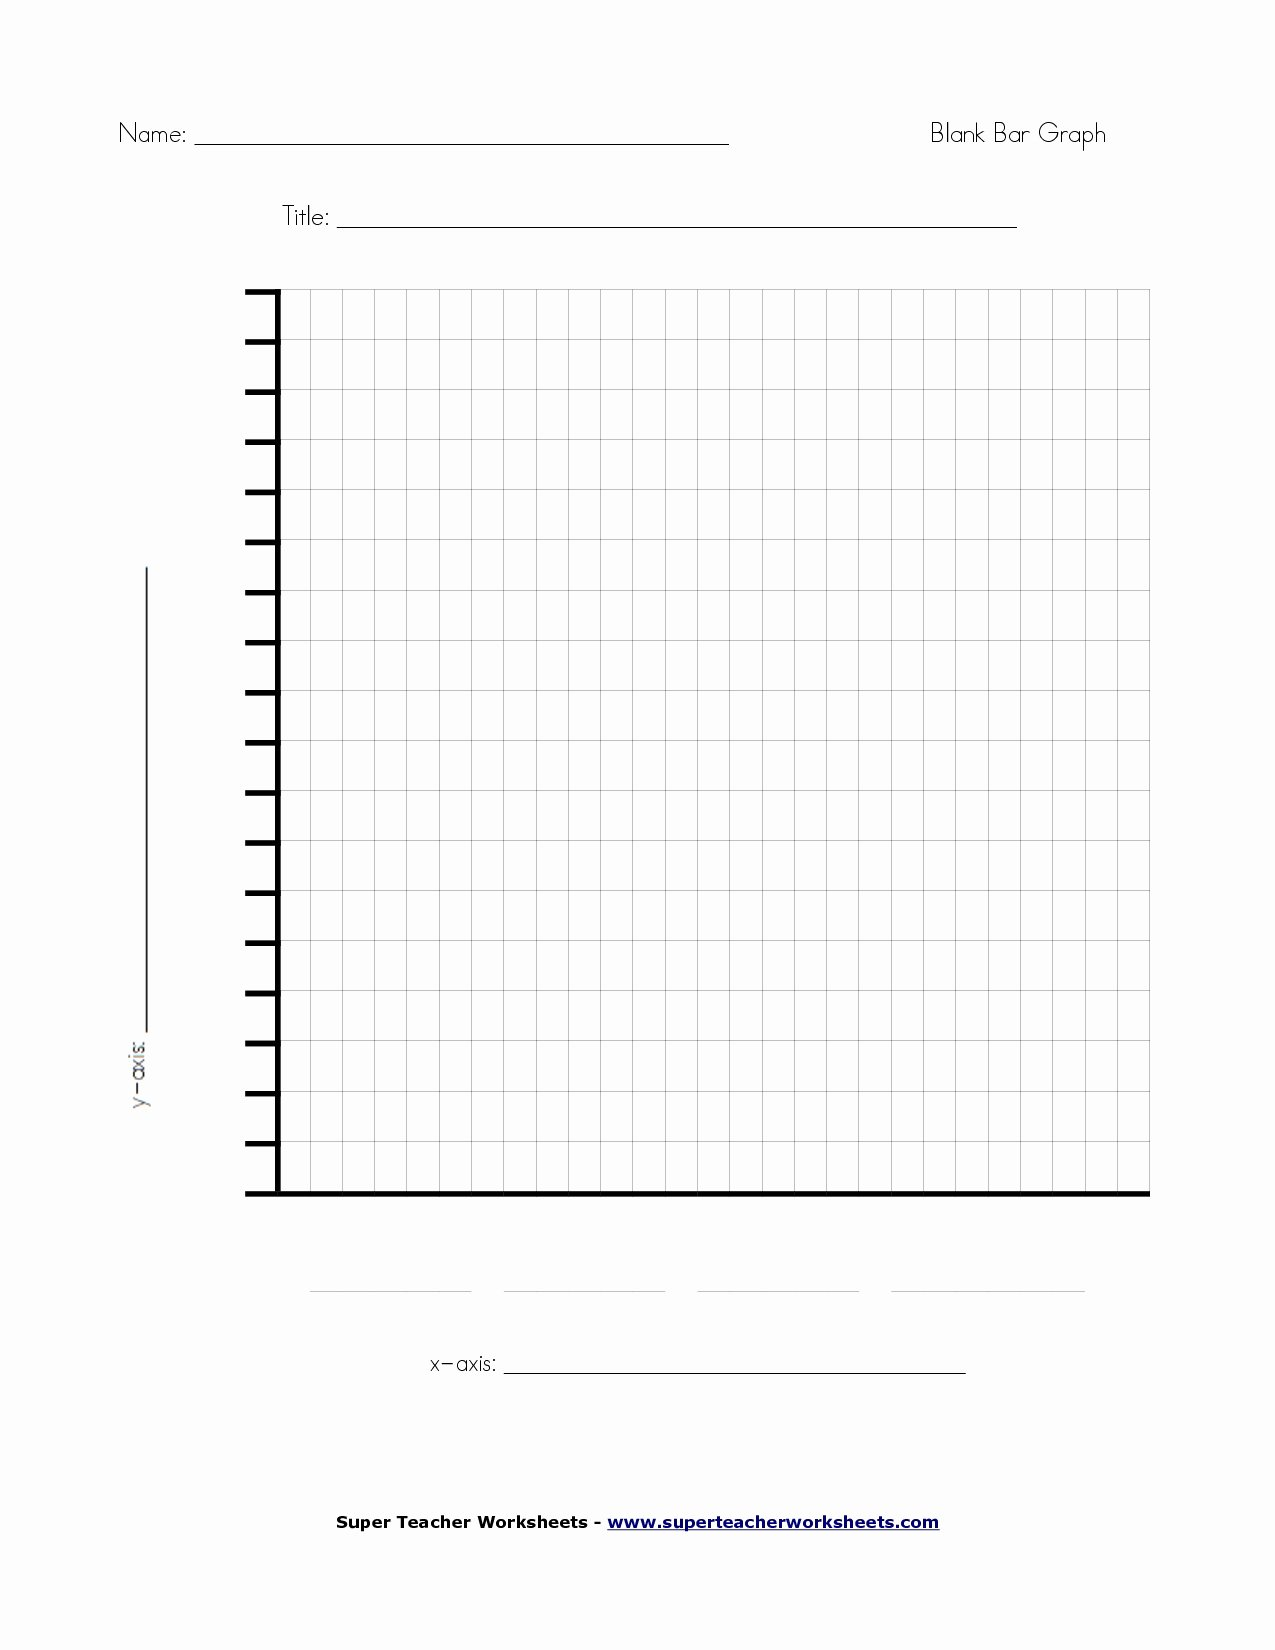 Blank Bar Graph Template Fresh Bar Graph for Kids Png Transparent Bar Graph for Kids Png